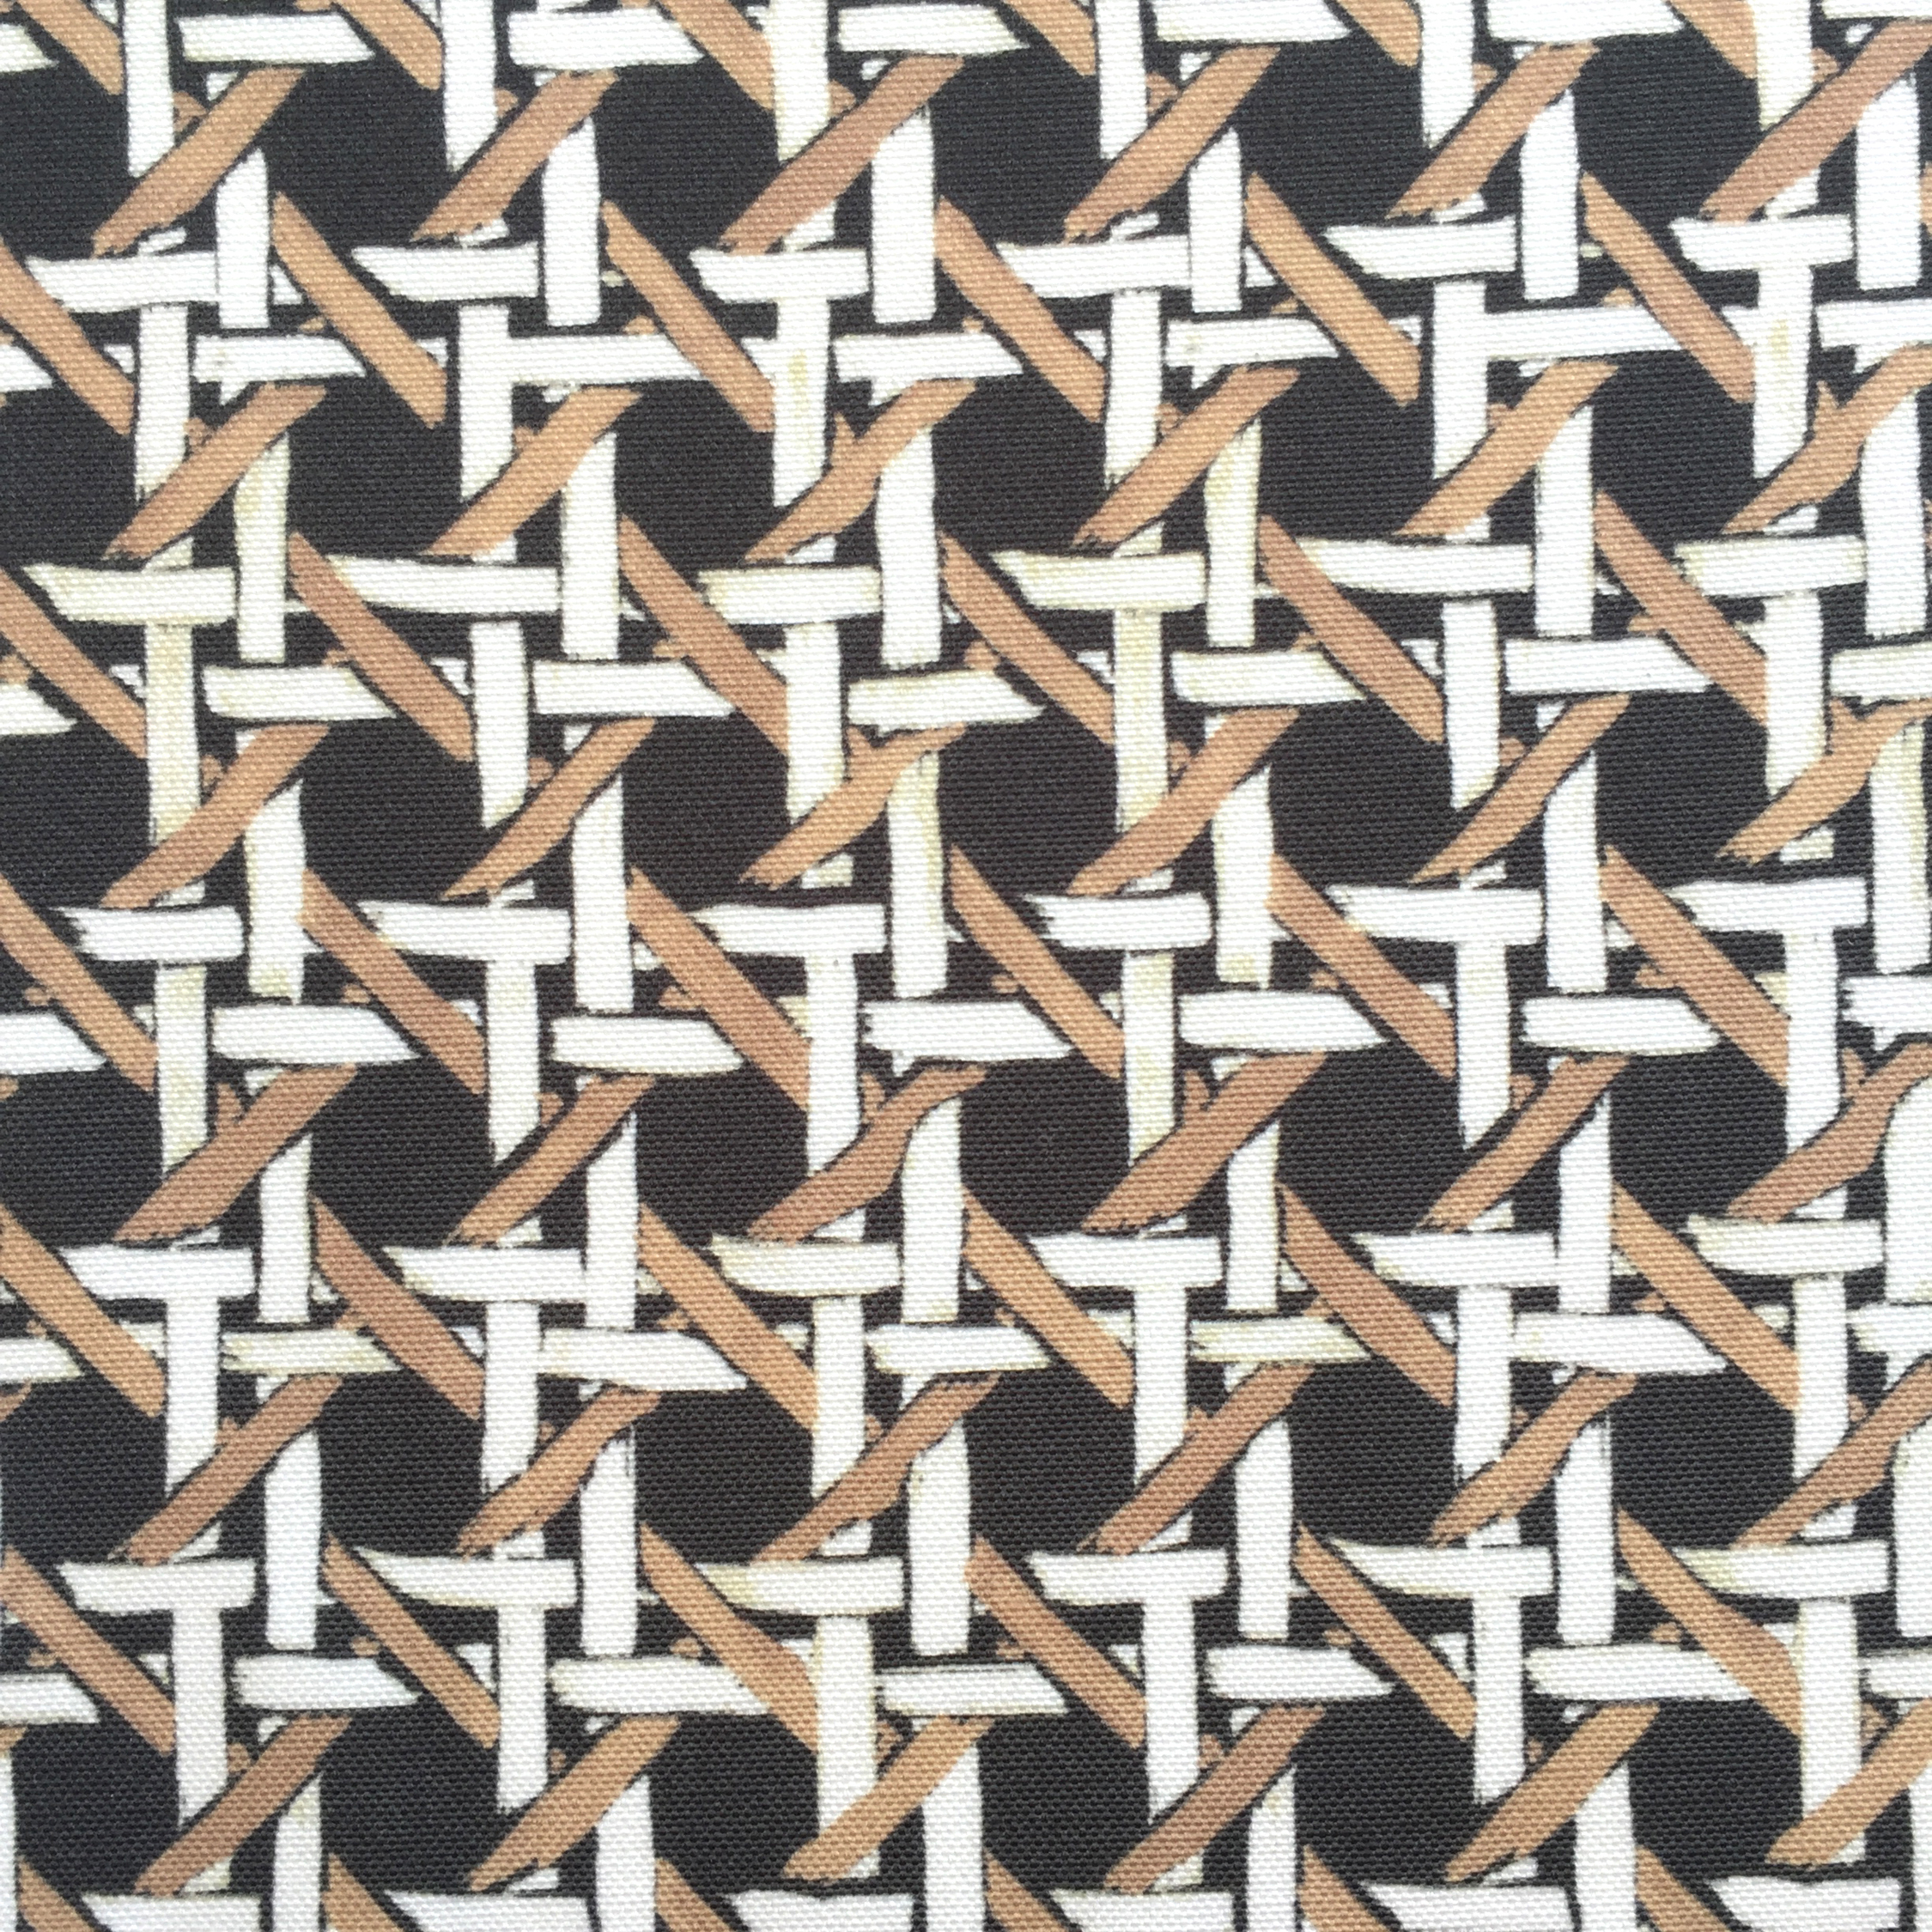 Cane Print in NINE IRON  PALM SPRINGS COLLECTION